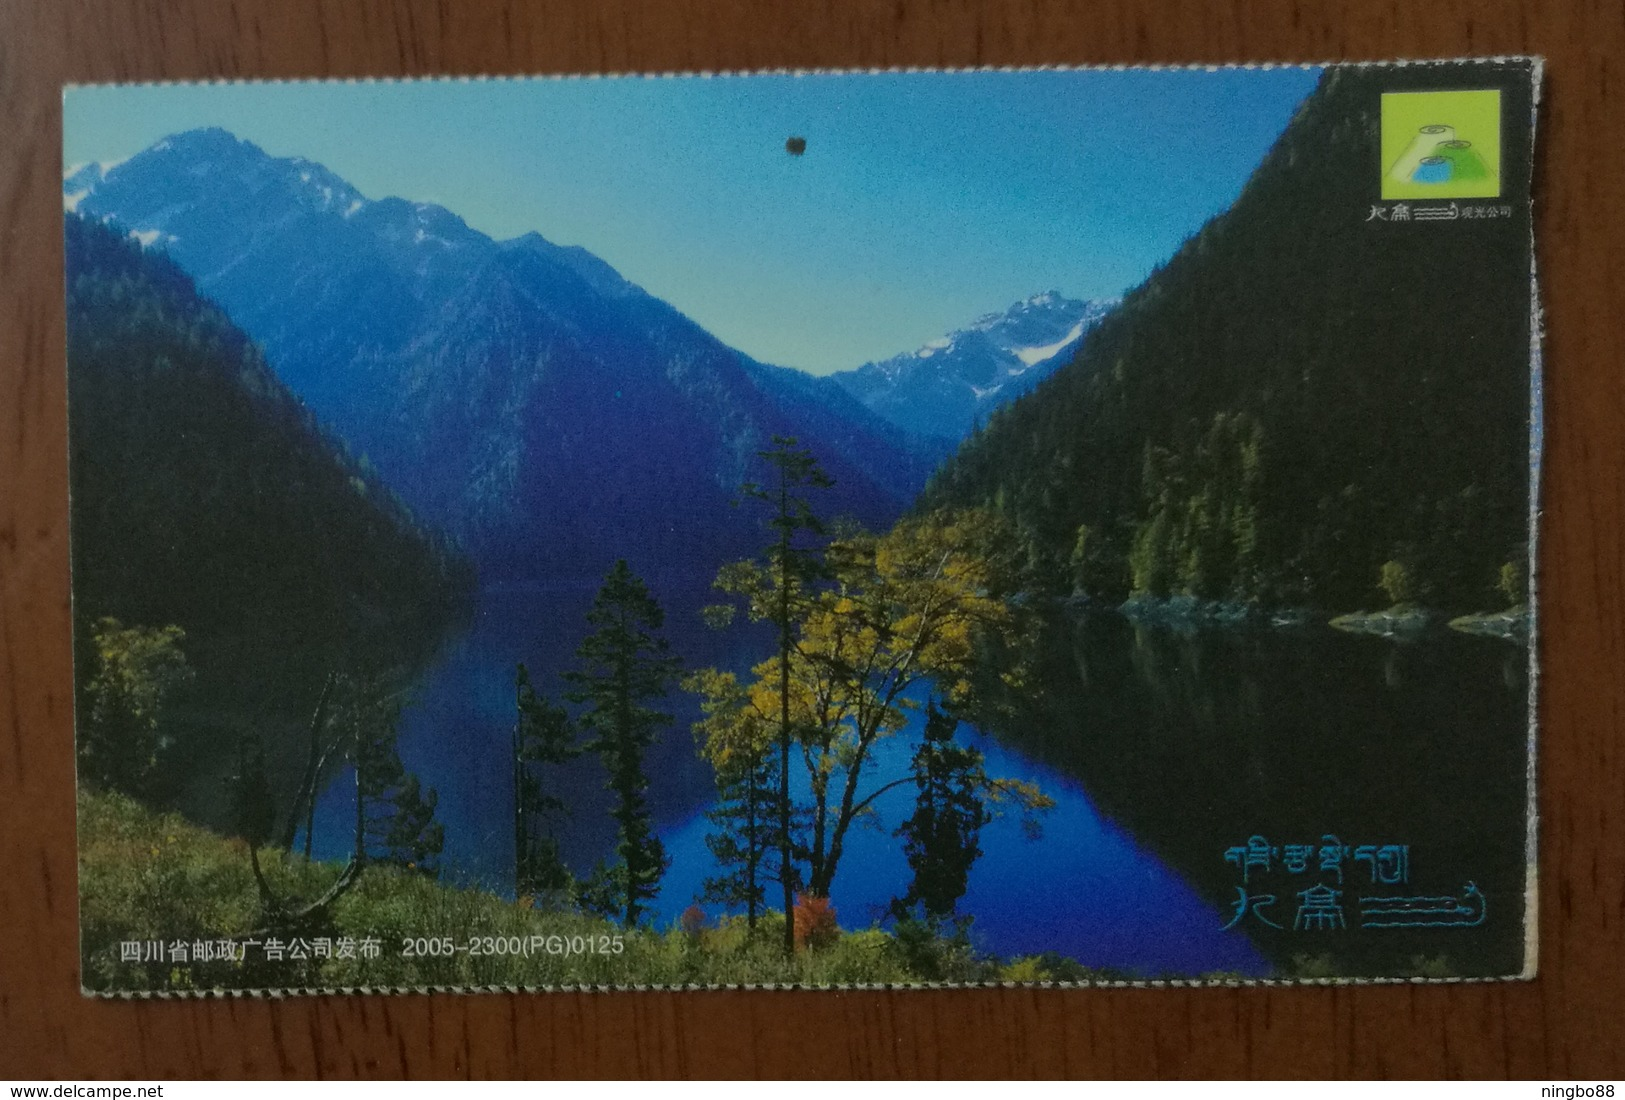 Nuorilang Waterfall,China 2005 Jiuzhaigou Valley Scenic And Historic Interest Area Small Size Ticket Pre-stamped Card - Holidays & Tourism